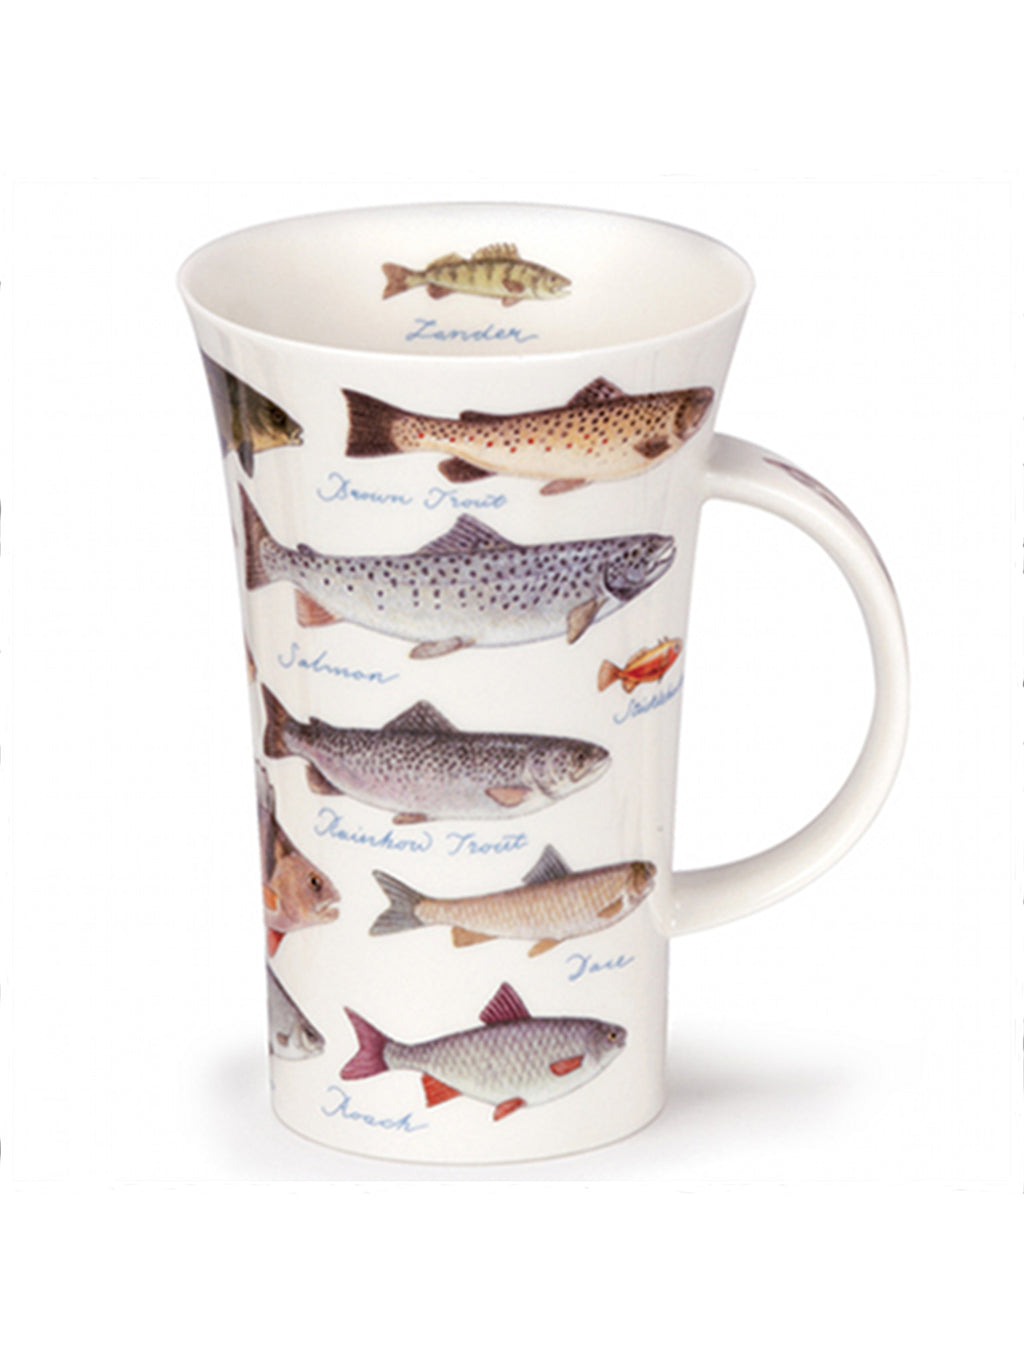 Buy Dunoon Mugs in Canada Glencoe Freshwater Fish Fine Bone China Handmade in England Tea Coffee Red Scarf Equestrian